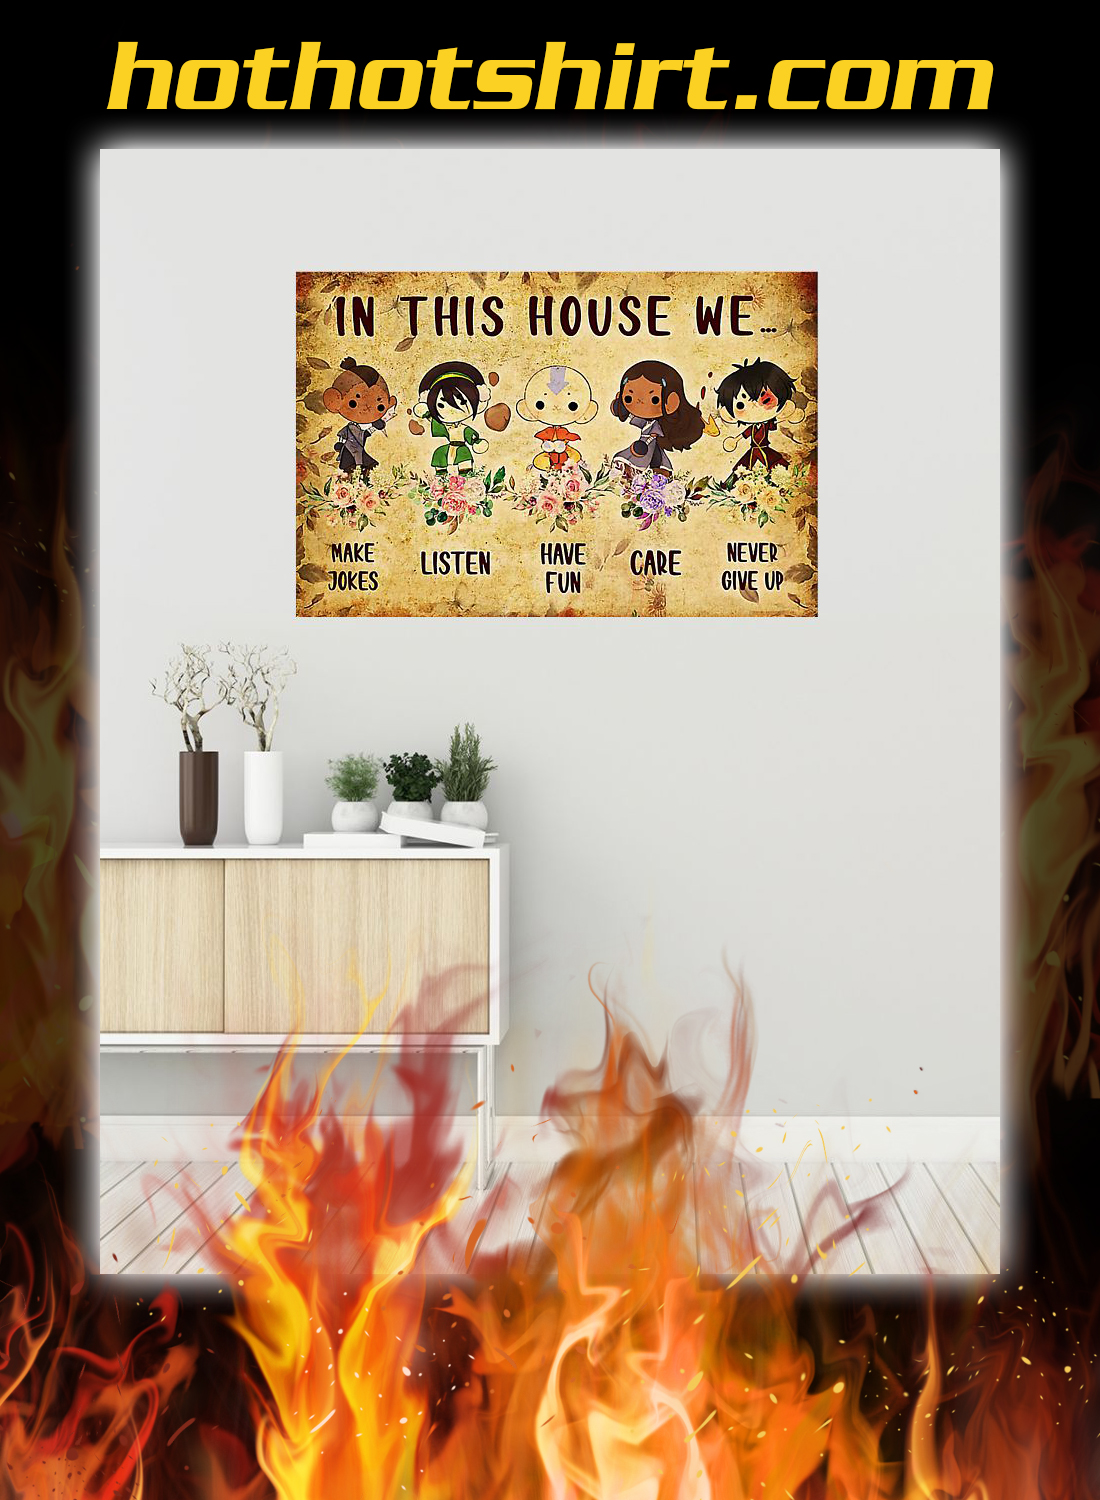 Last airbender in this house we poster 1